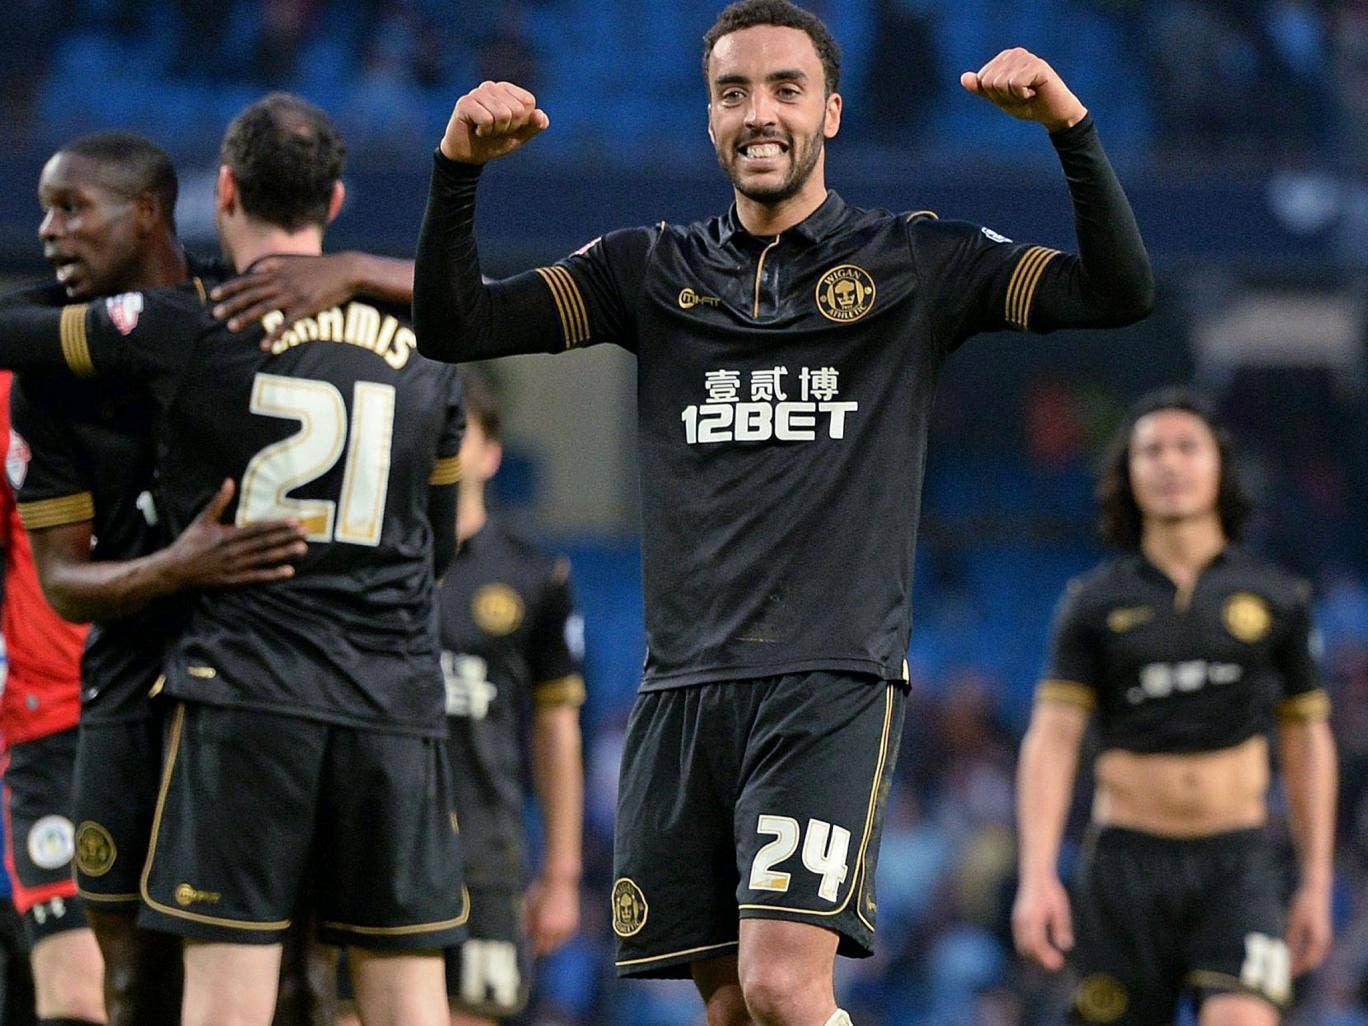 Wigan Athletic's James Perch celebrates at the final whistle after his goal helped knock Manchester City out of the FA Cup at the Etihad Stadium